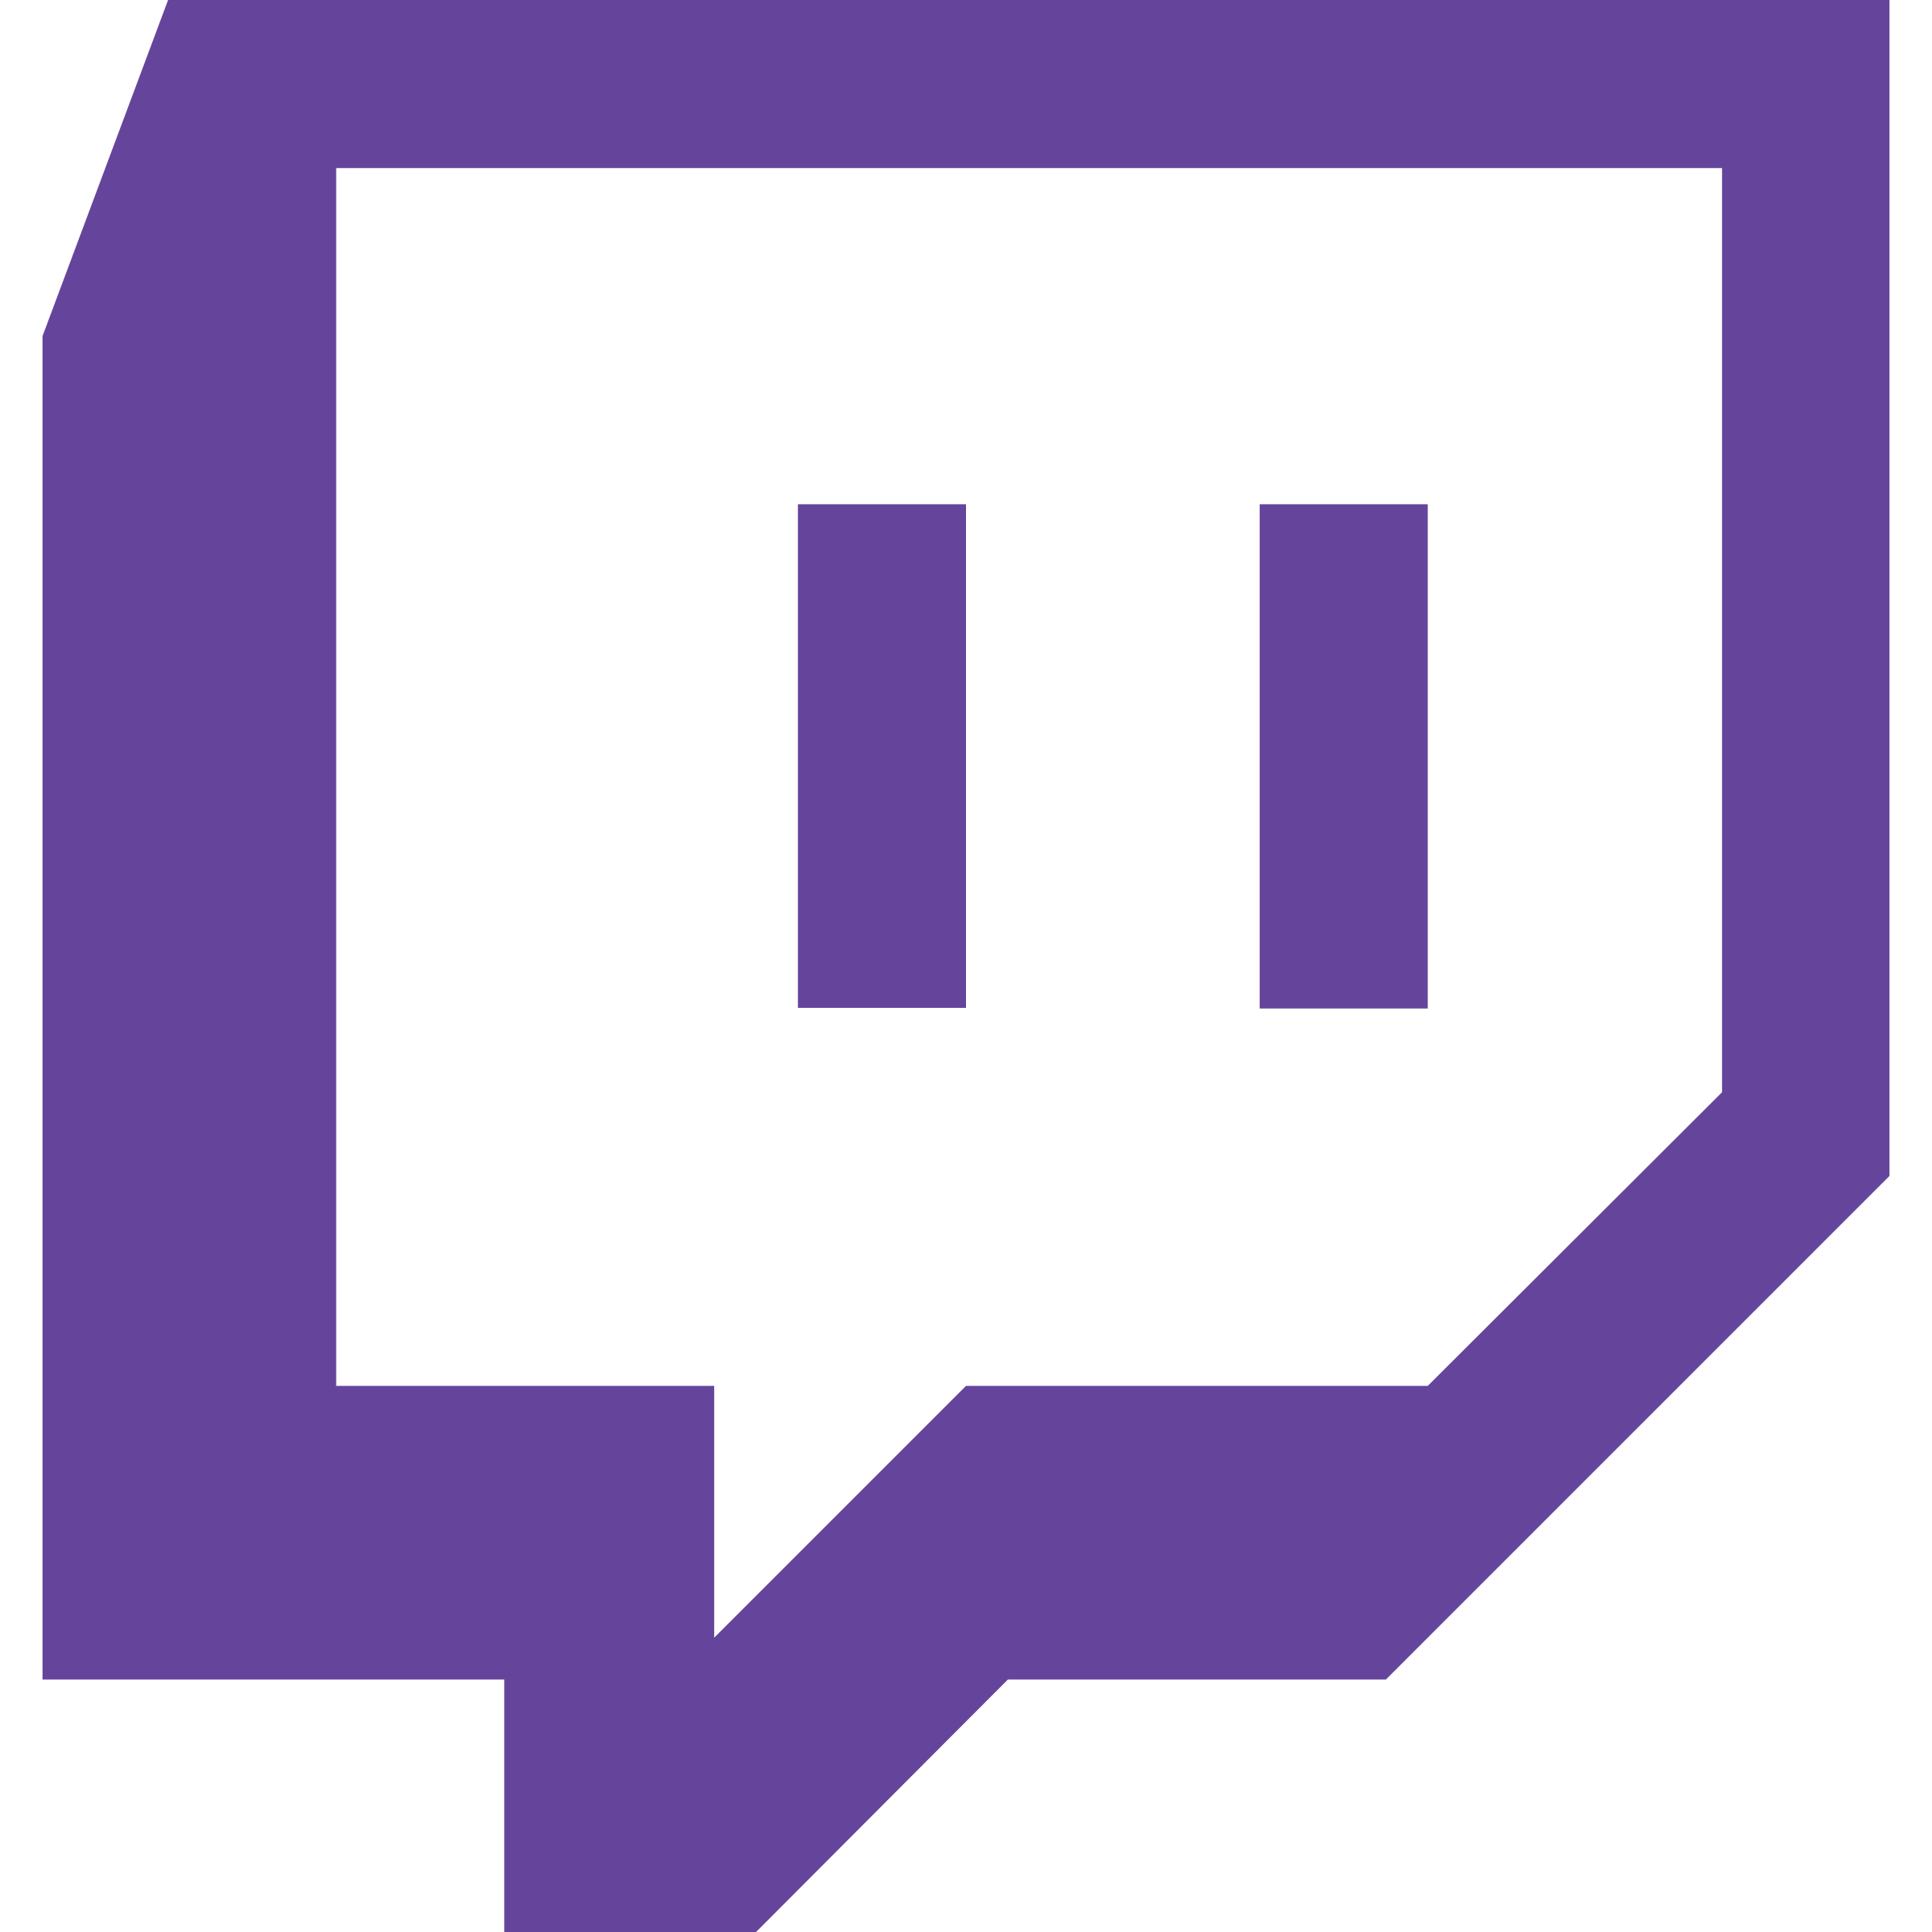 Twitch logo PNG images free download - Twitch App Logo